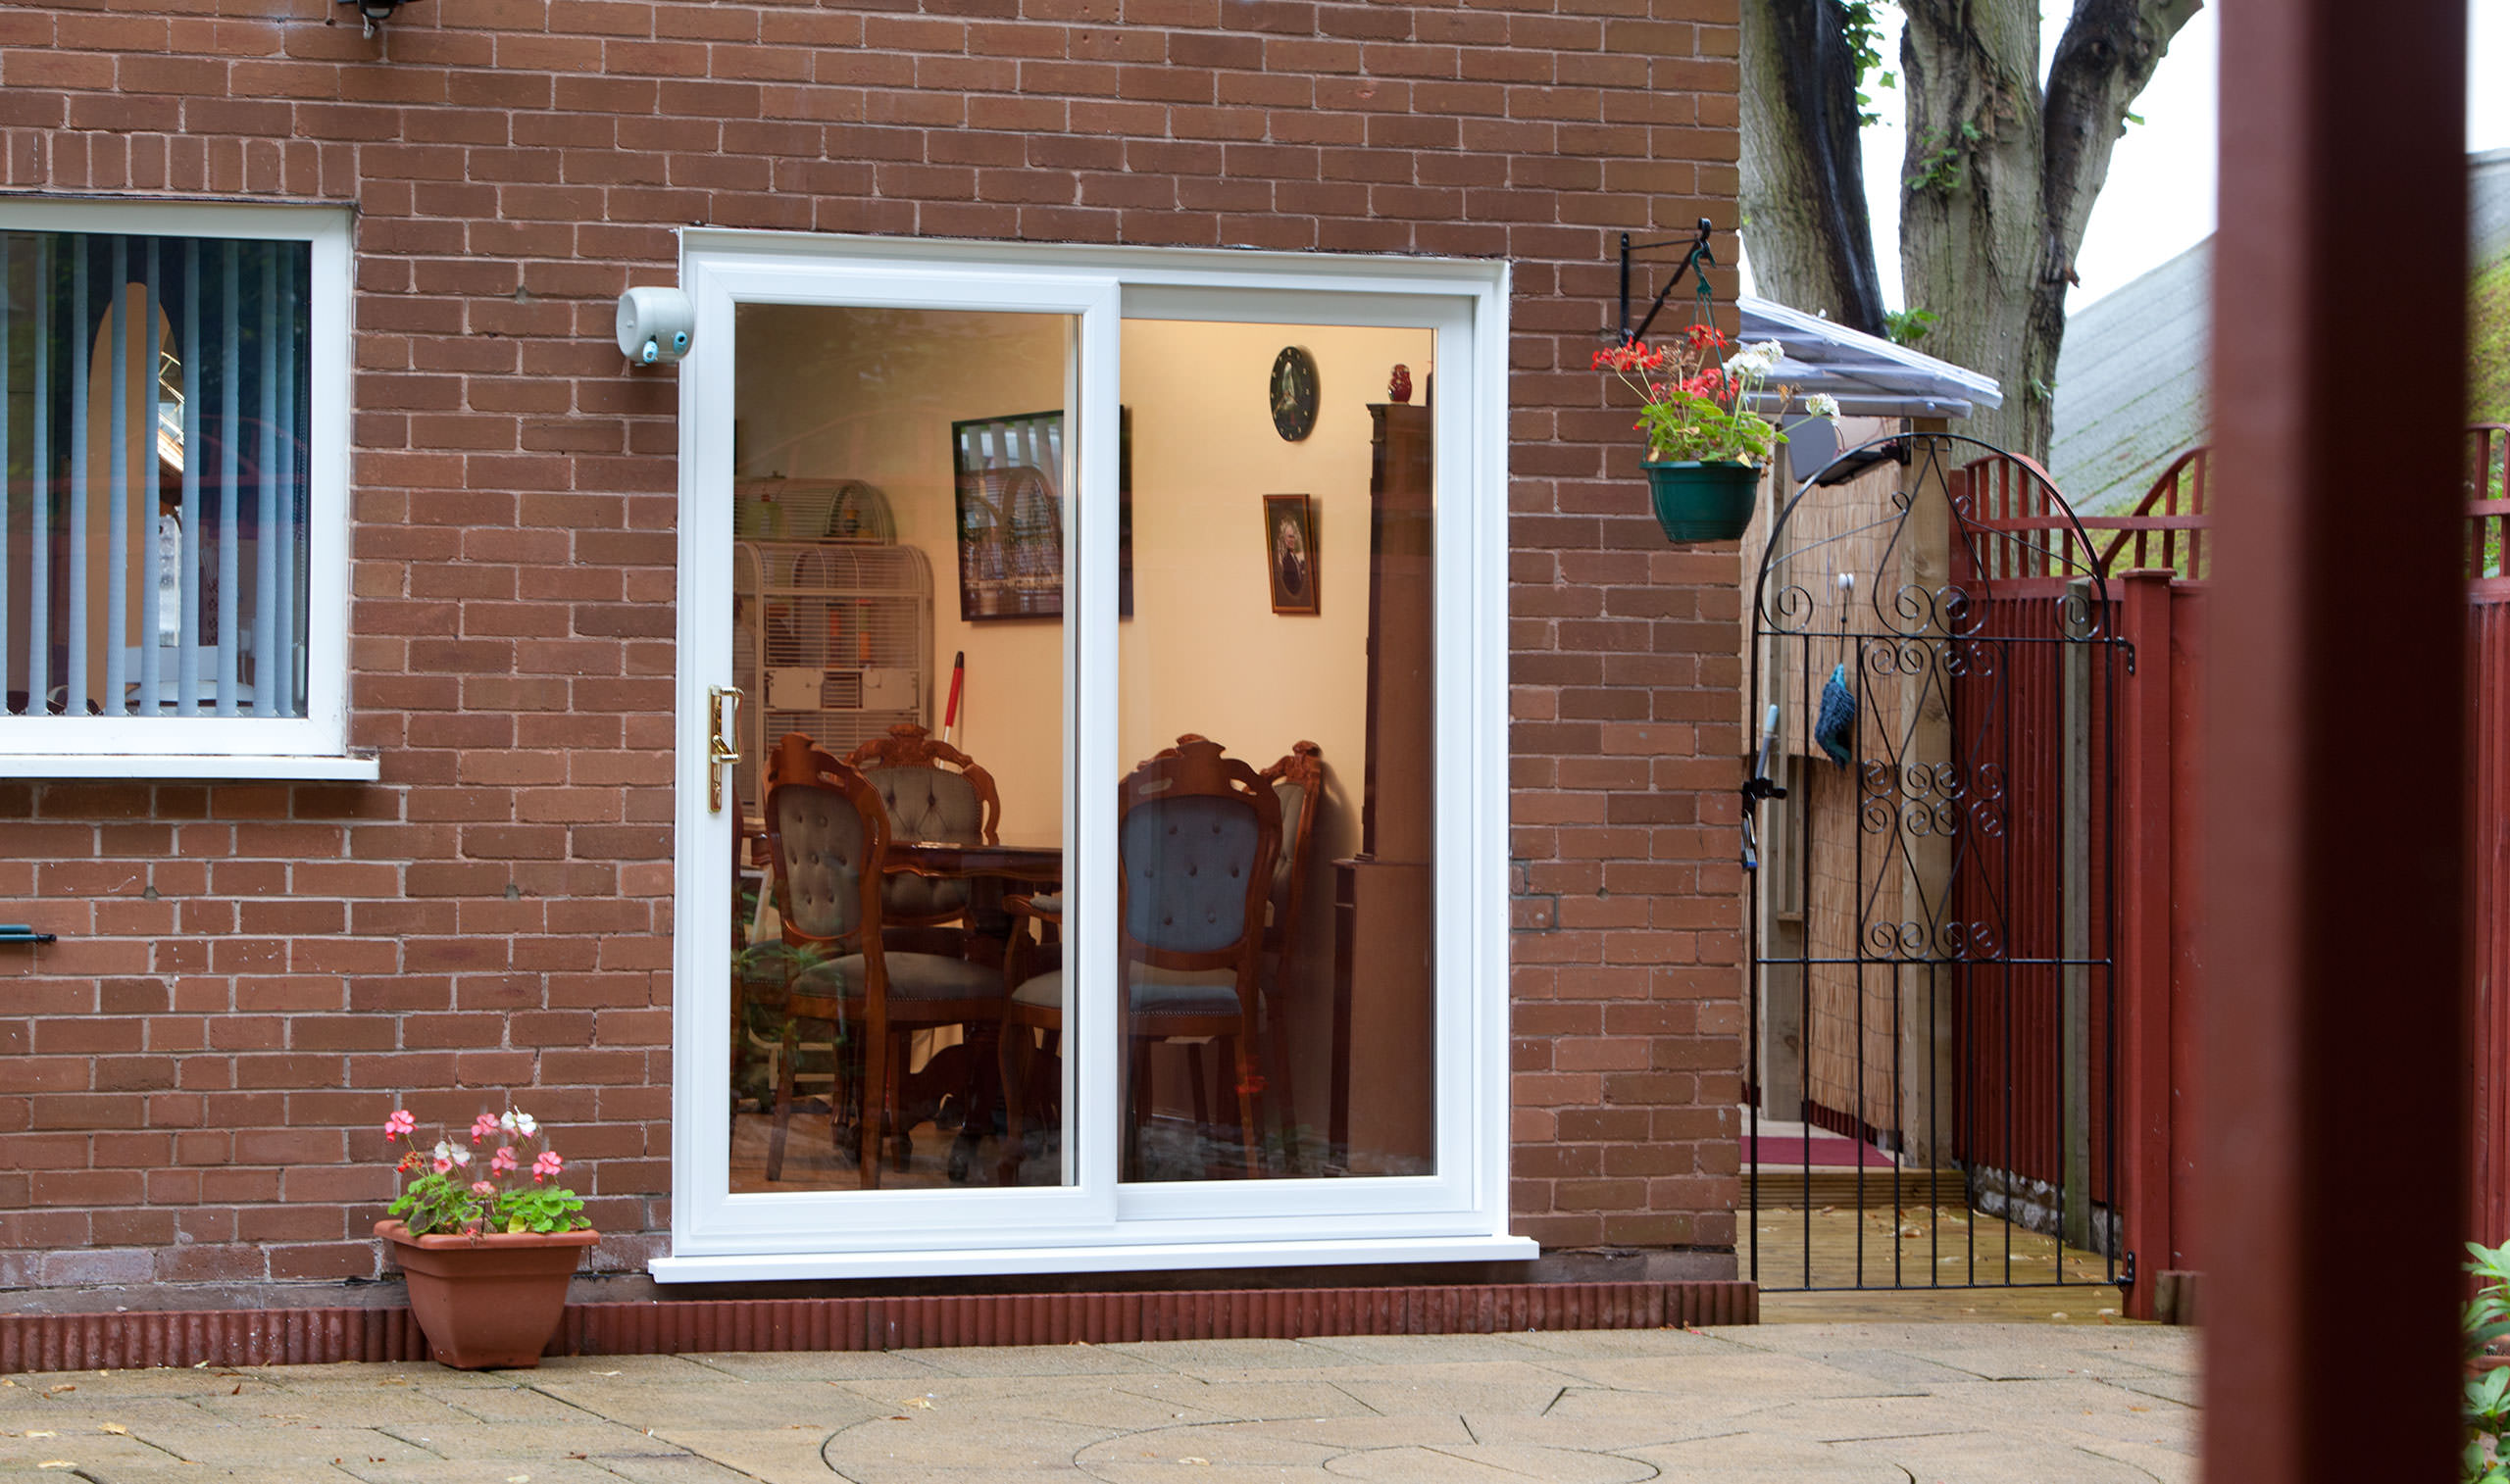 Awesome 3731 UPVC Patio Doors Sutton Sliding Doors London Pic Of Patio Doors Online  2560 1514 #